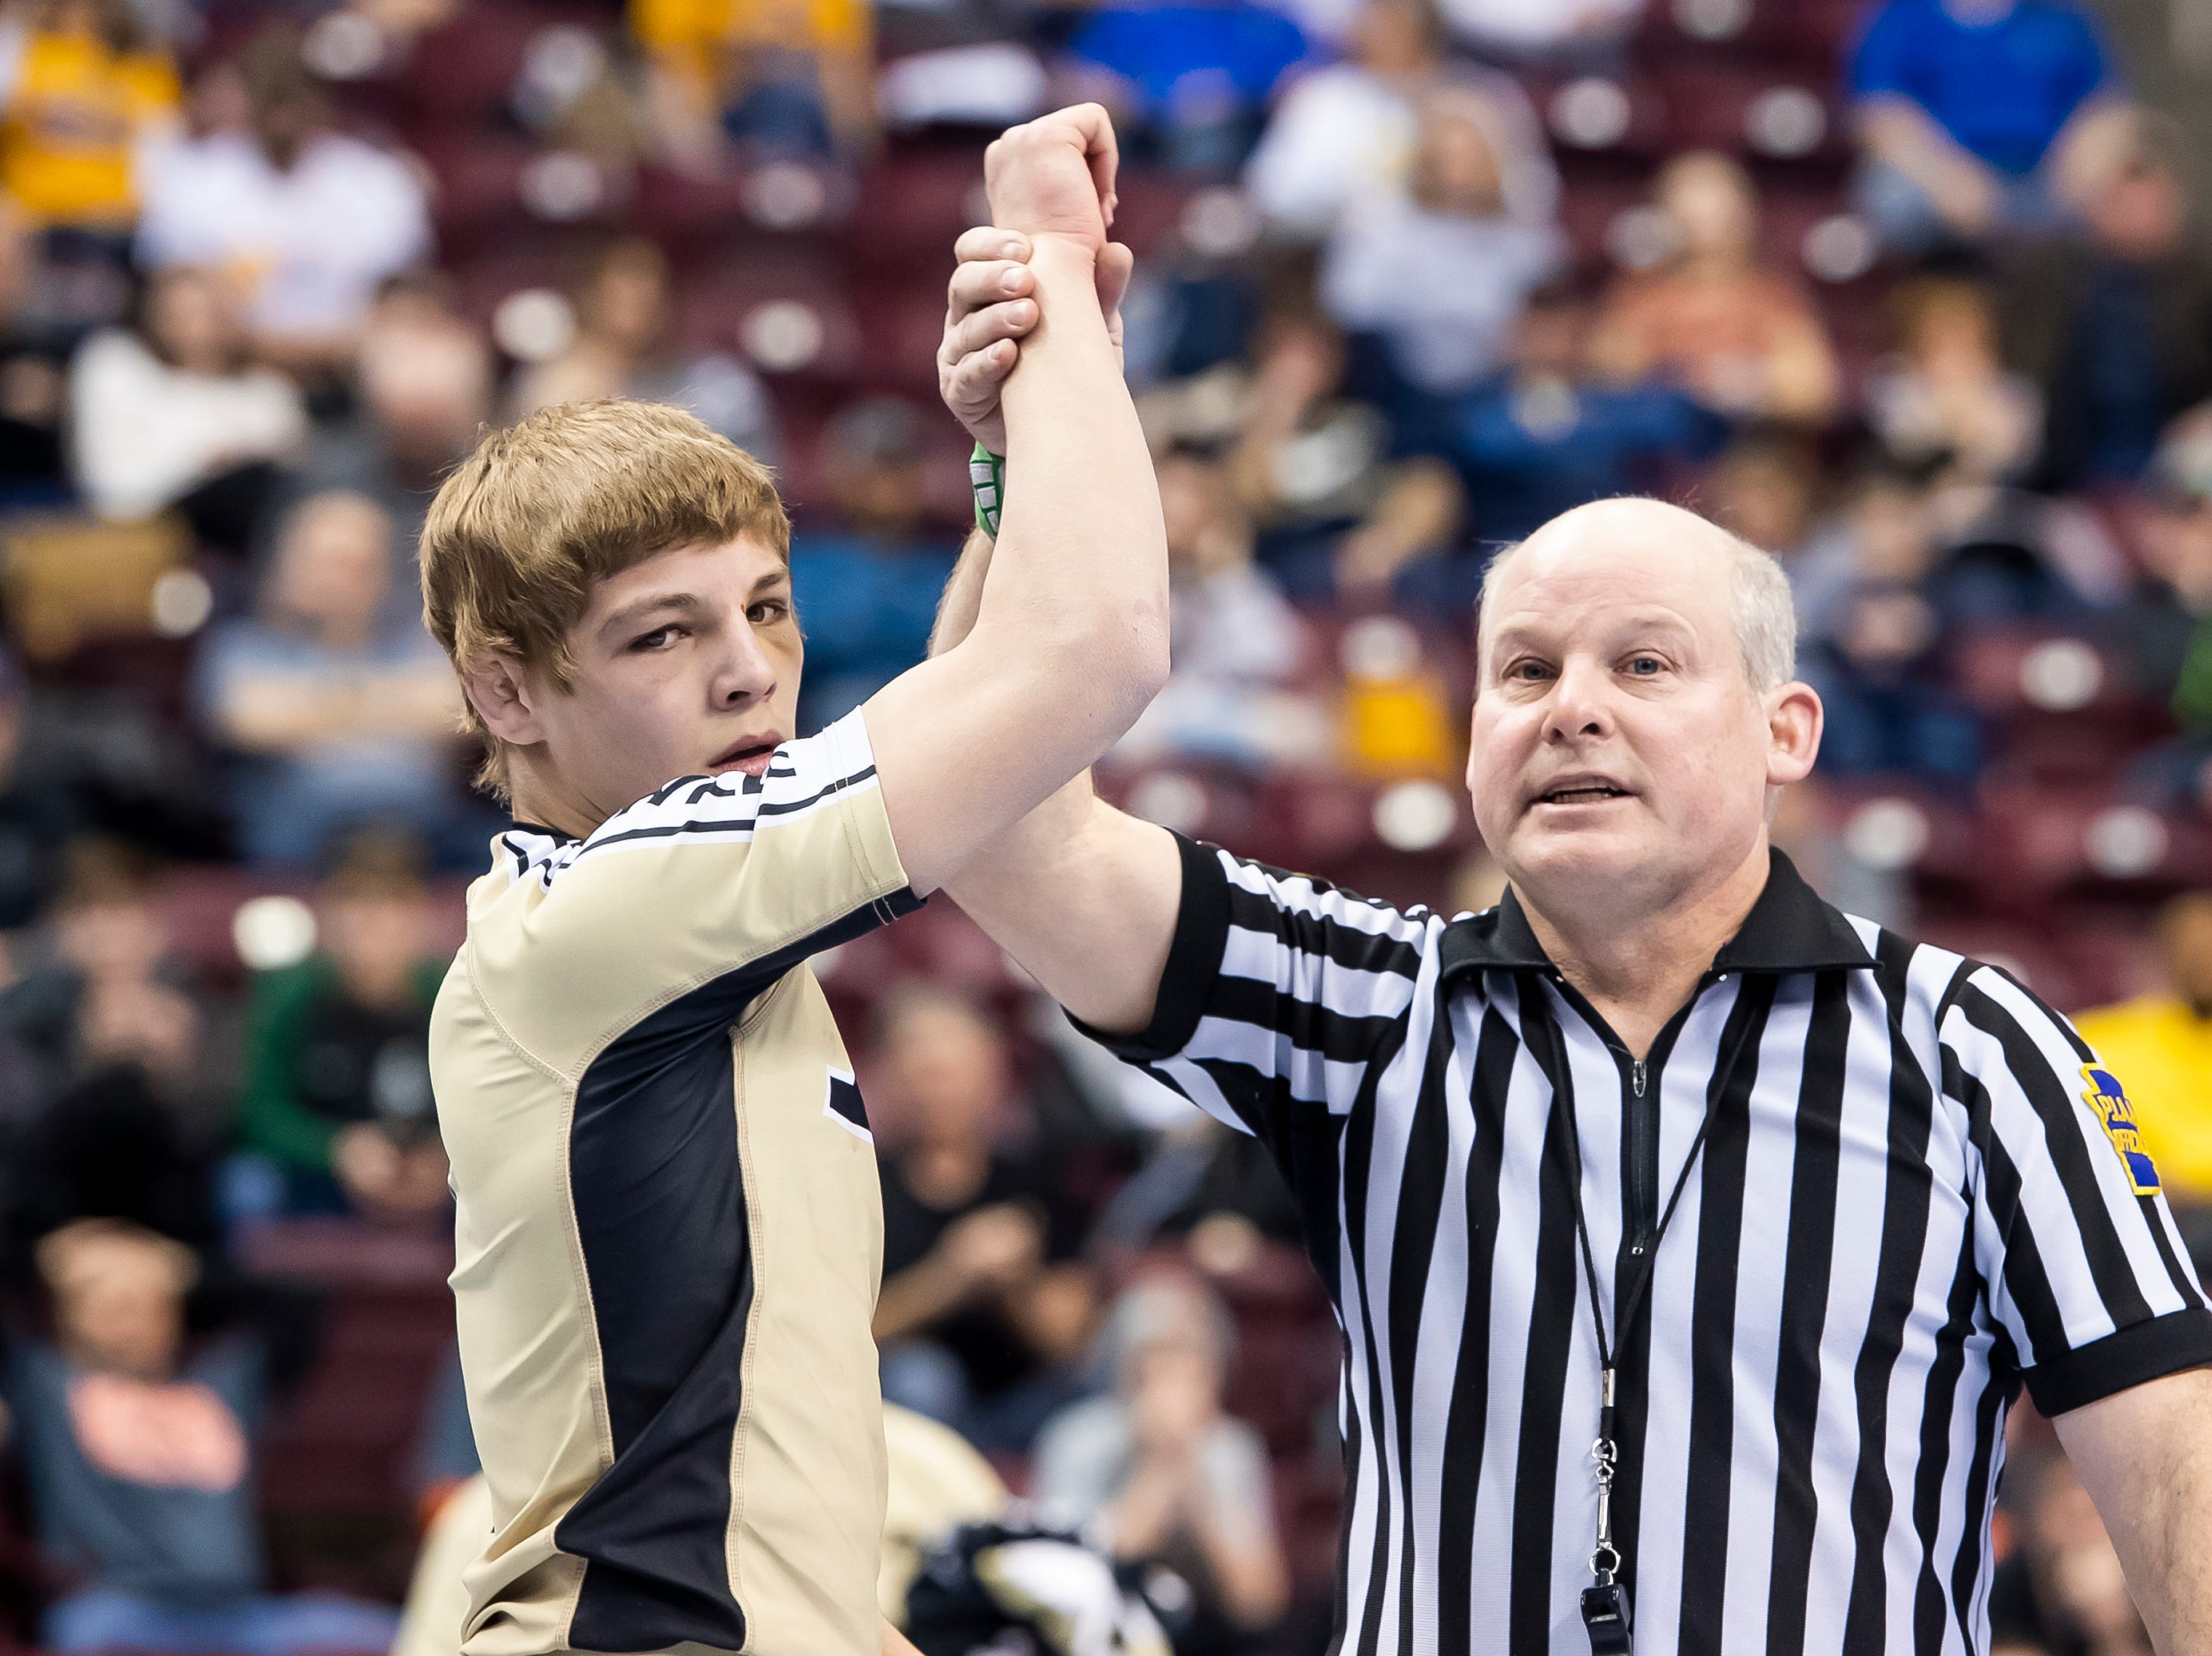 Biglerville's Blake Showers has his hand raised after defeating Milton's Kyler Crawford during a 120-pound second round consolation bout at the Giant Center in Hershey Friday, March 8, 2019. Showers won by fall 4:02.